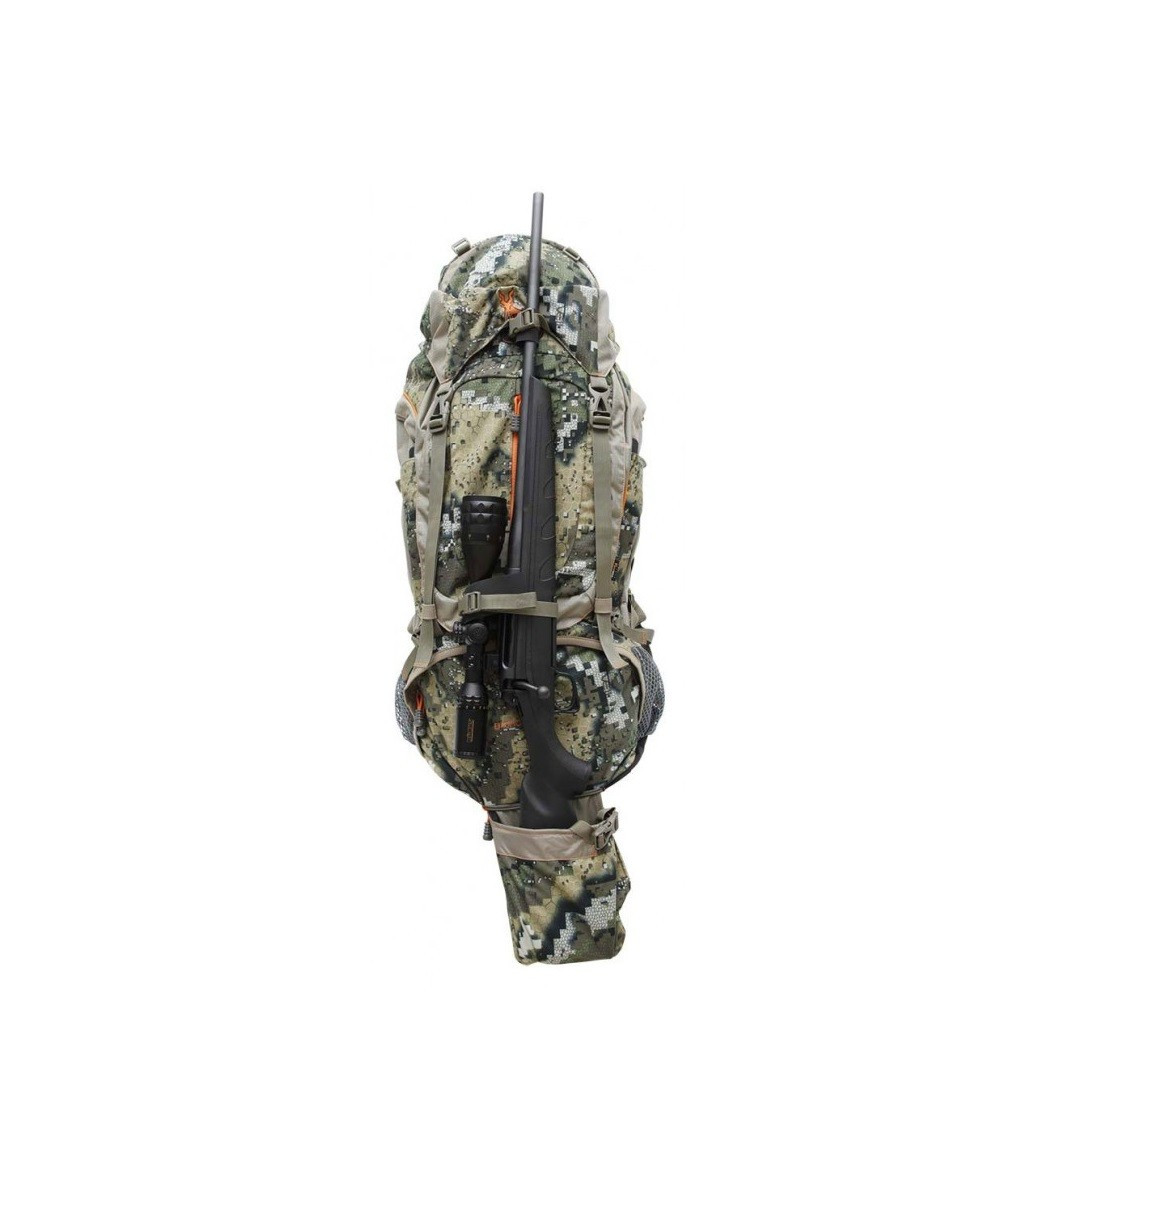 Equipement Sac à dos Bighorn 75+ Camouflage Pixel Desolve Veil Markhor Hunting - 2